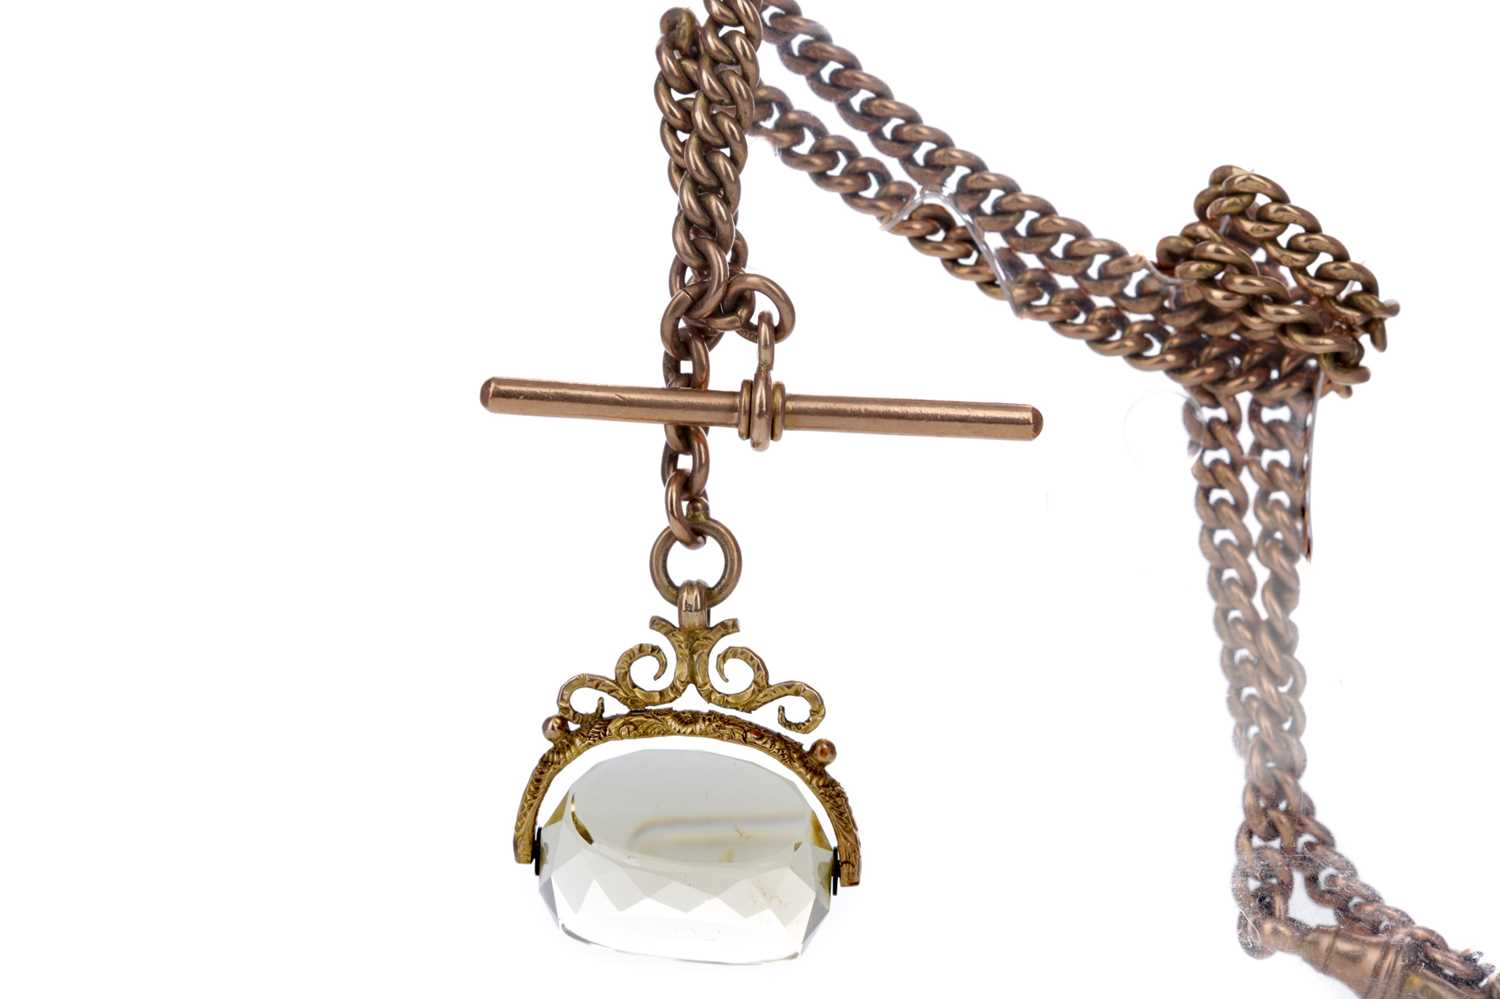 Lot 377 - A DOUBLE ALBERT CHAIN WITH SWIVEL FOB